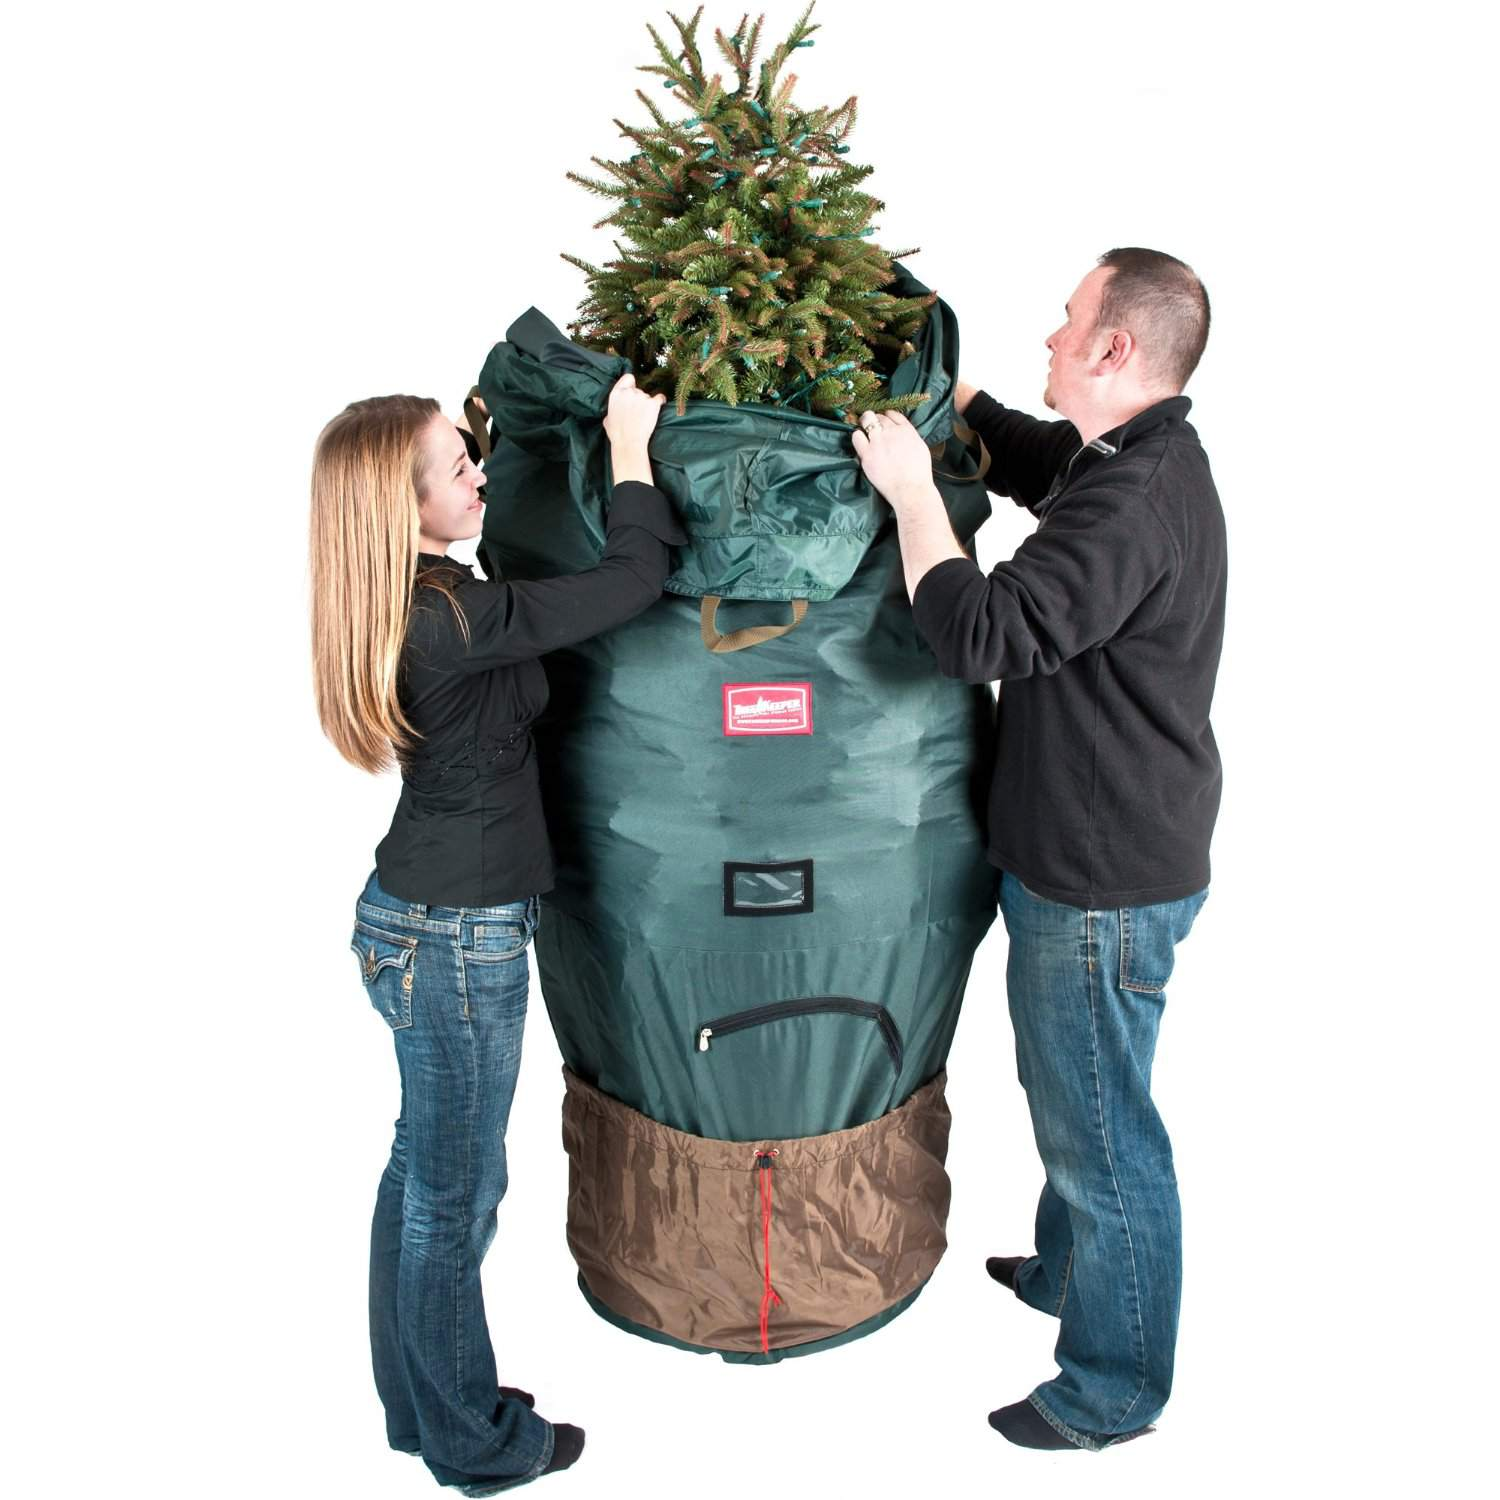 6 Storage Solutions for Your Artificial Christmas Tree